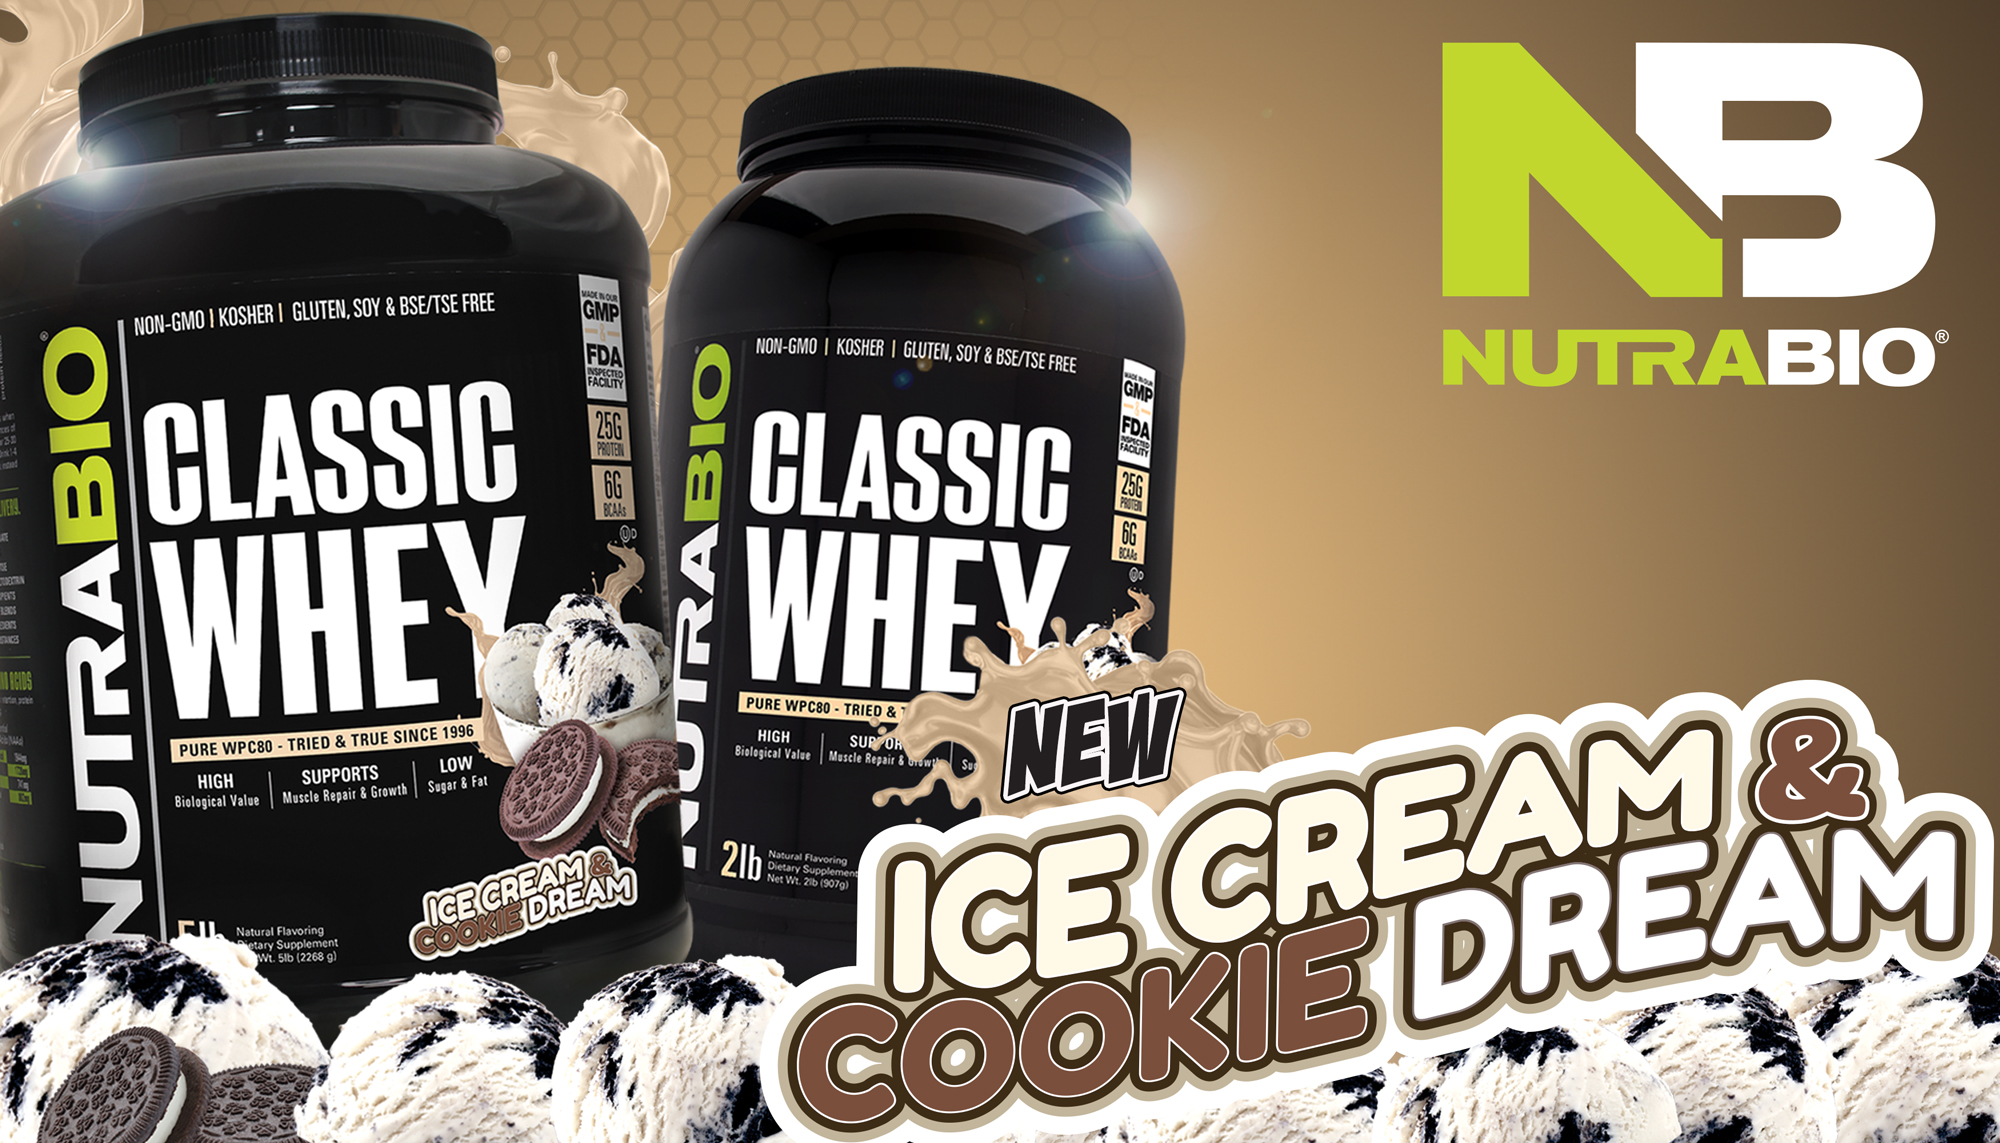 NutraBio Classic Whey Ice Cream Cookie Dream Upgrades Cookies & Cream!